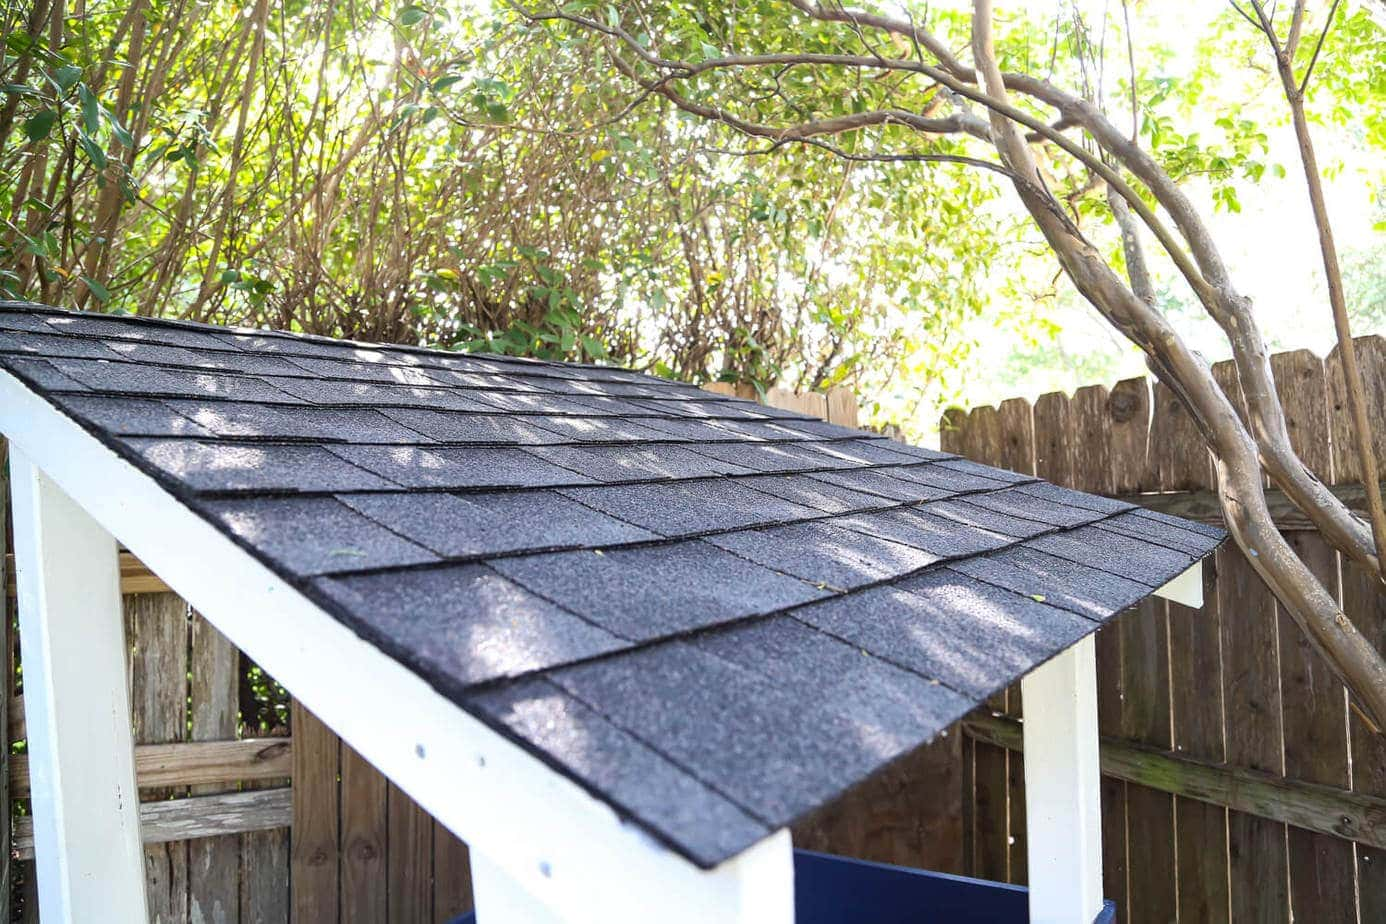 How to install shingles on a playhouse roof